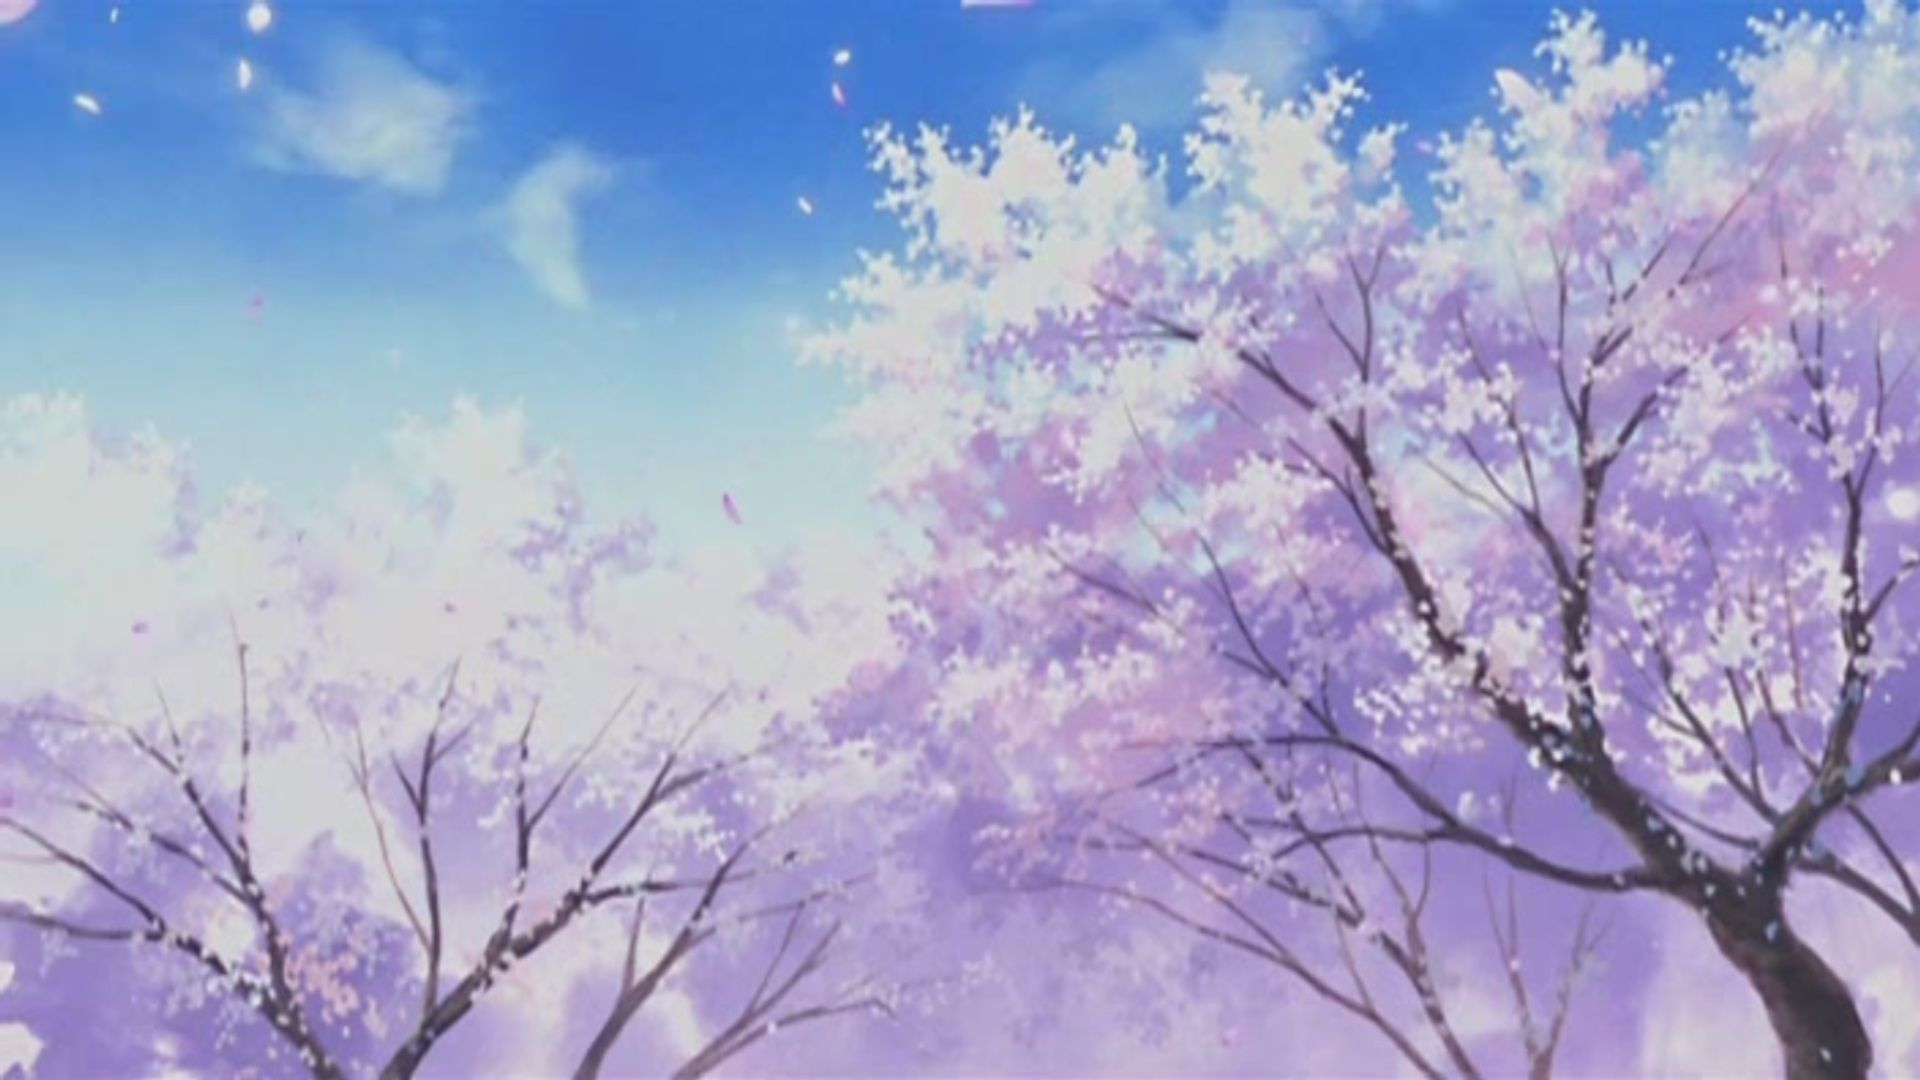 Cherry Blossom Anime Scenery Wallpaper Free Download 90289 Wallpaper Aesthetic Desktop Wallpaper Anime Backgrounds Wallpapers Anime Scenery Wallpaper